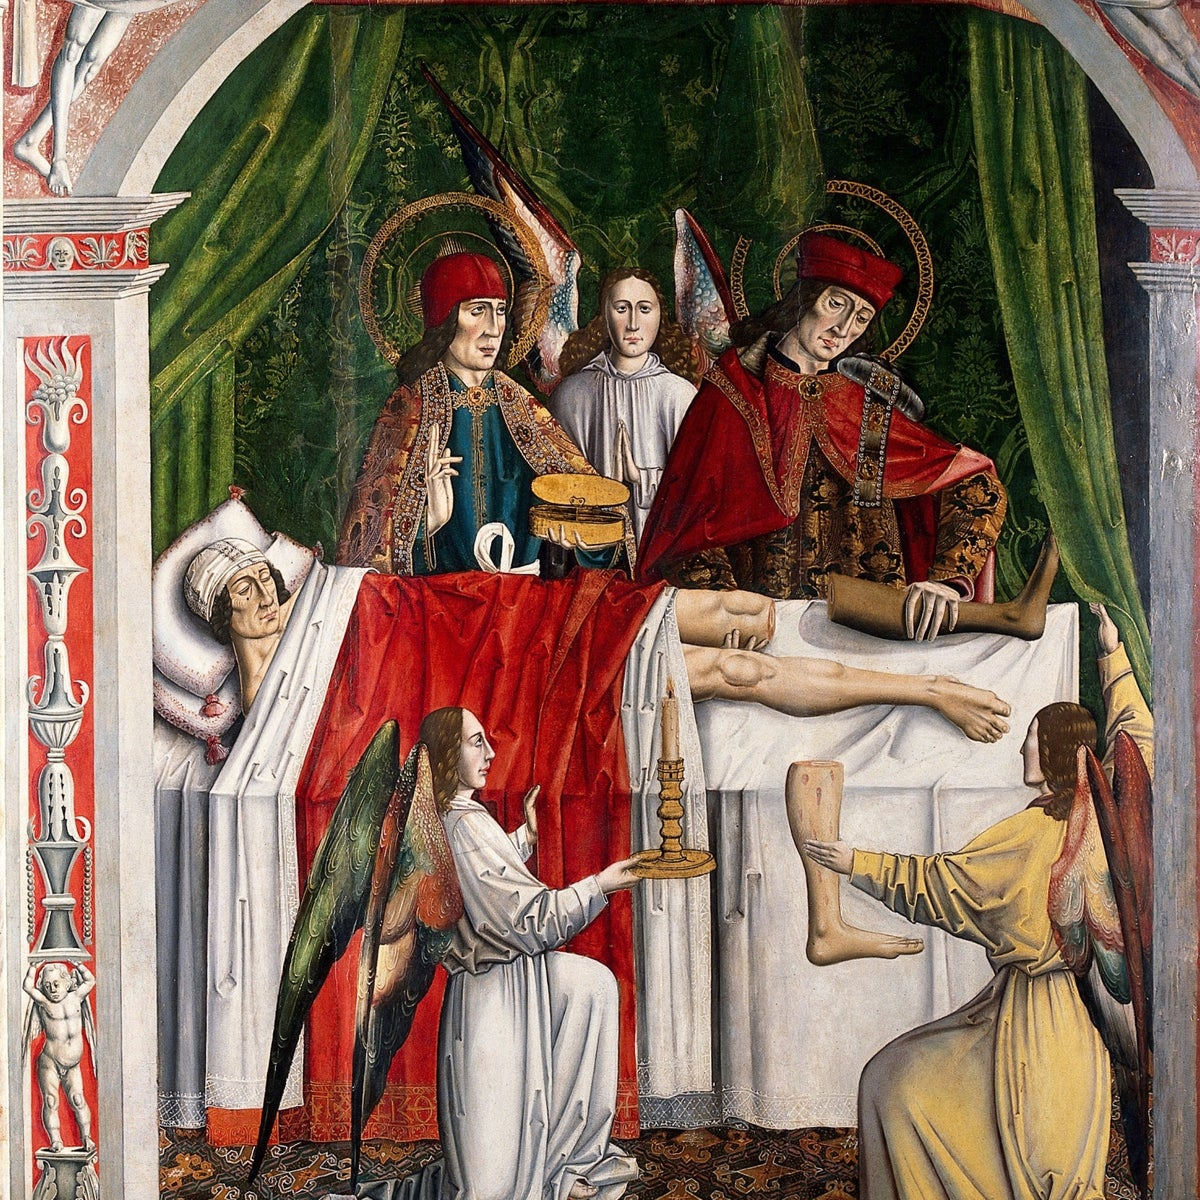 A verger's dream: Saints Cosmas and Damian performing a miraculous cure by transplantation of a leg. Oil painting attributed to the Master of Los Balbases, ca. 1495